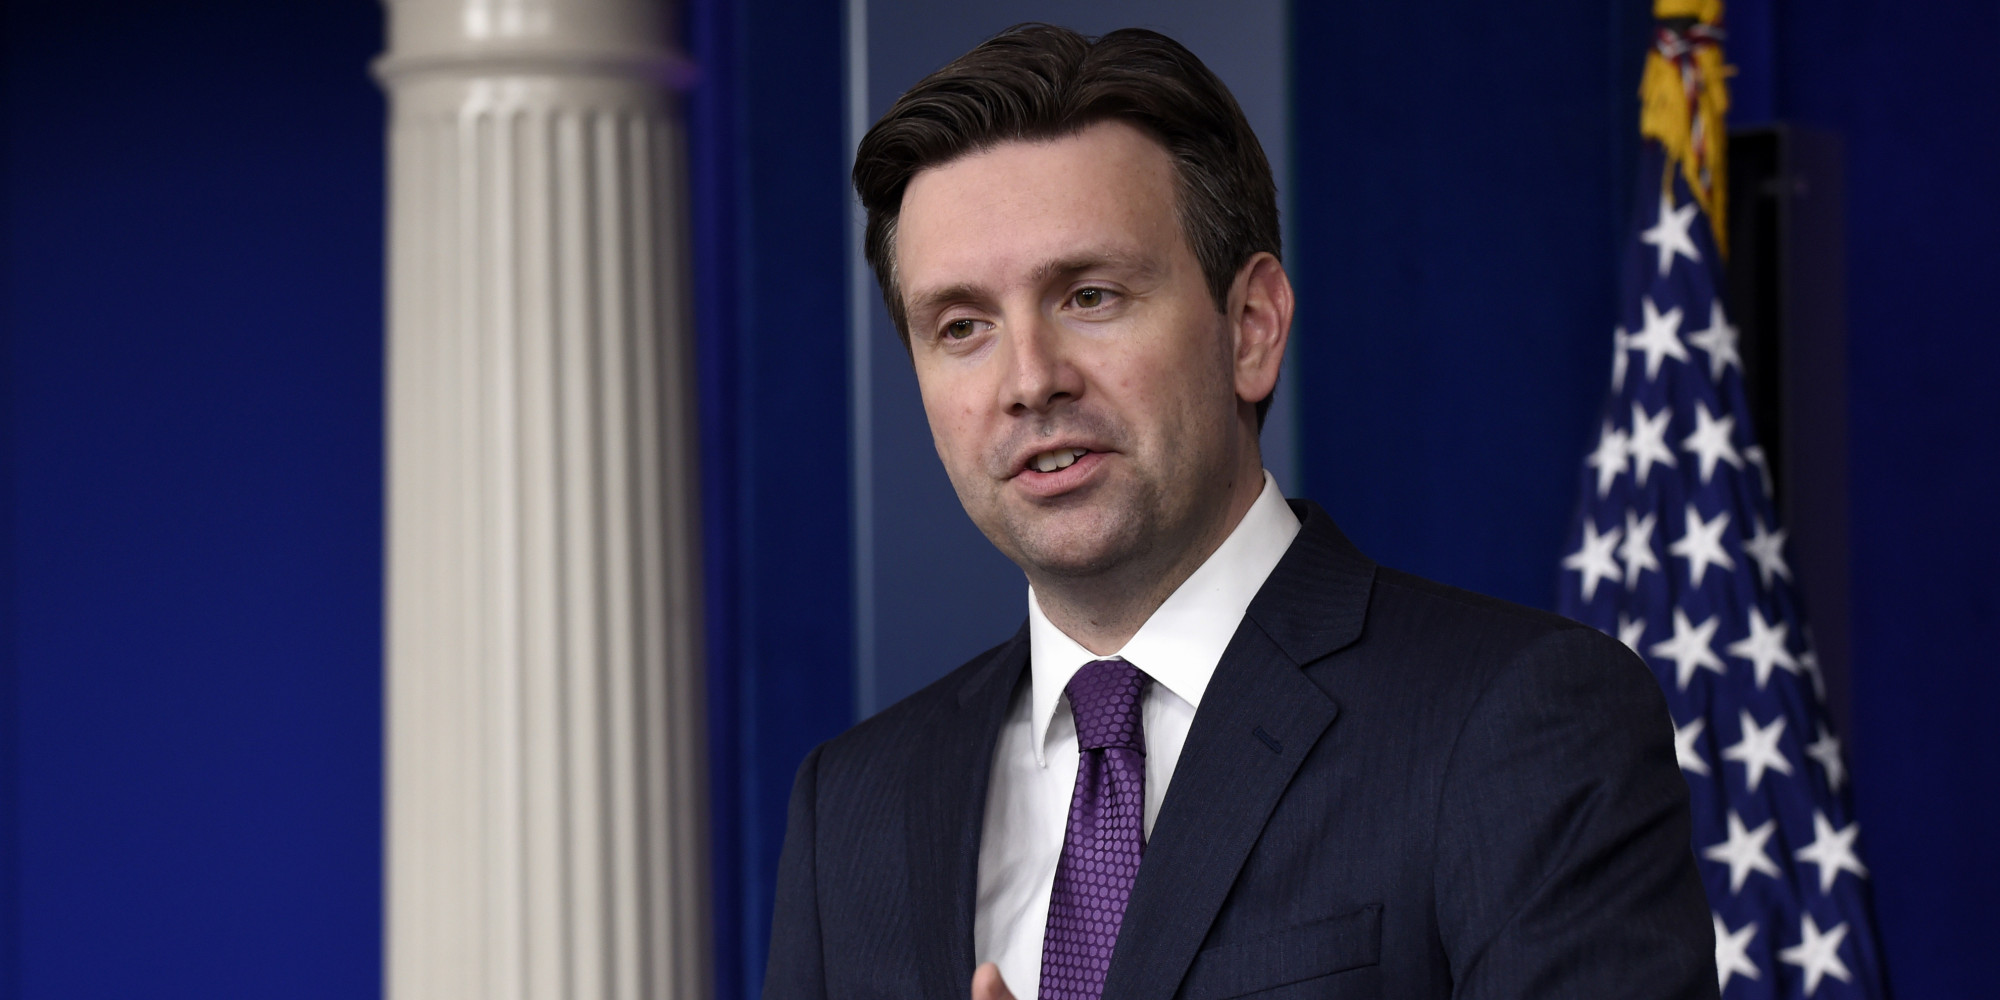 Police Body Cameras >> White House: Walter Scott Shooting Shows Why Police Should Wear Body Cameras | HuffPost